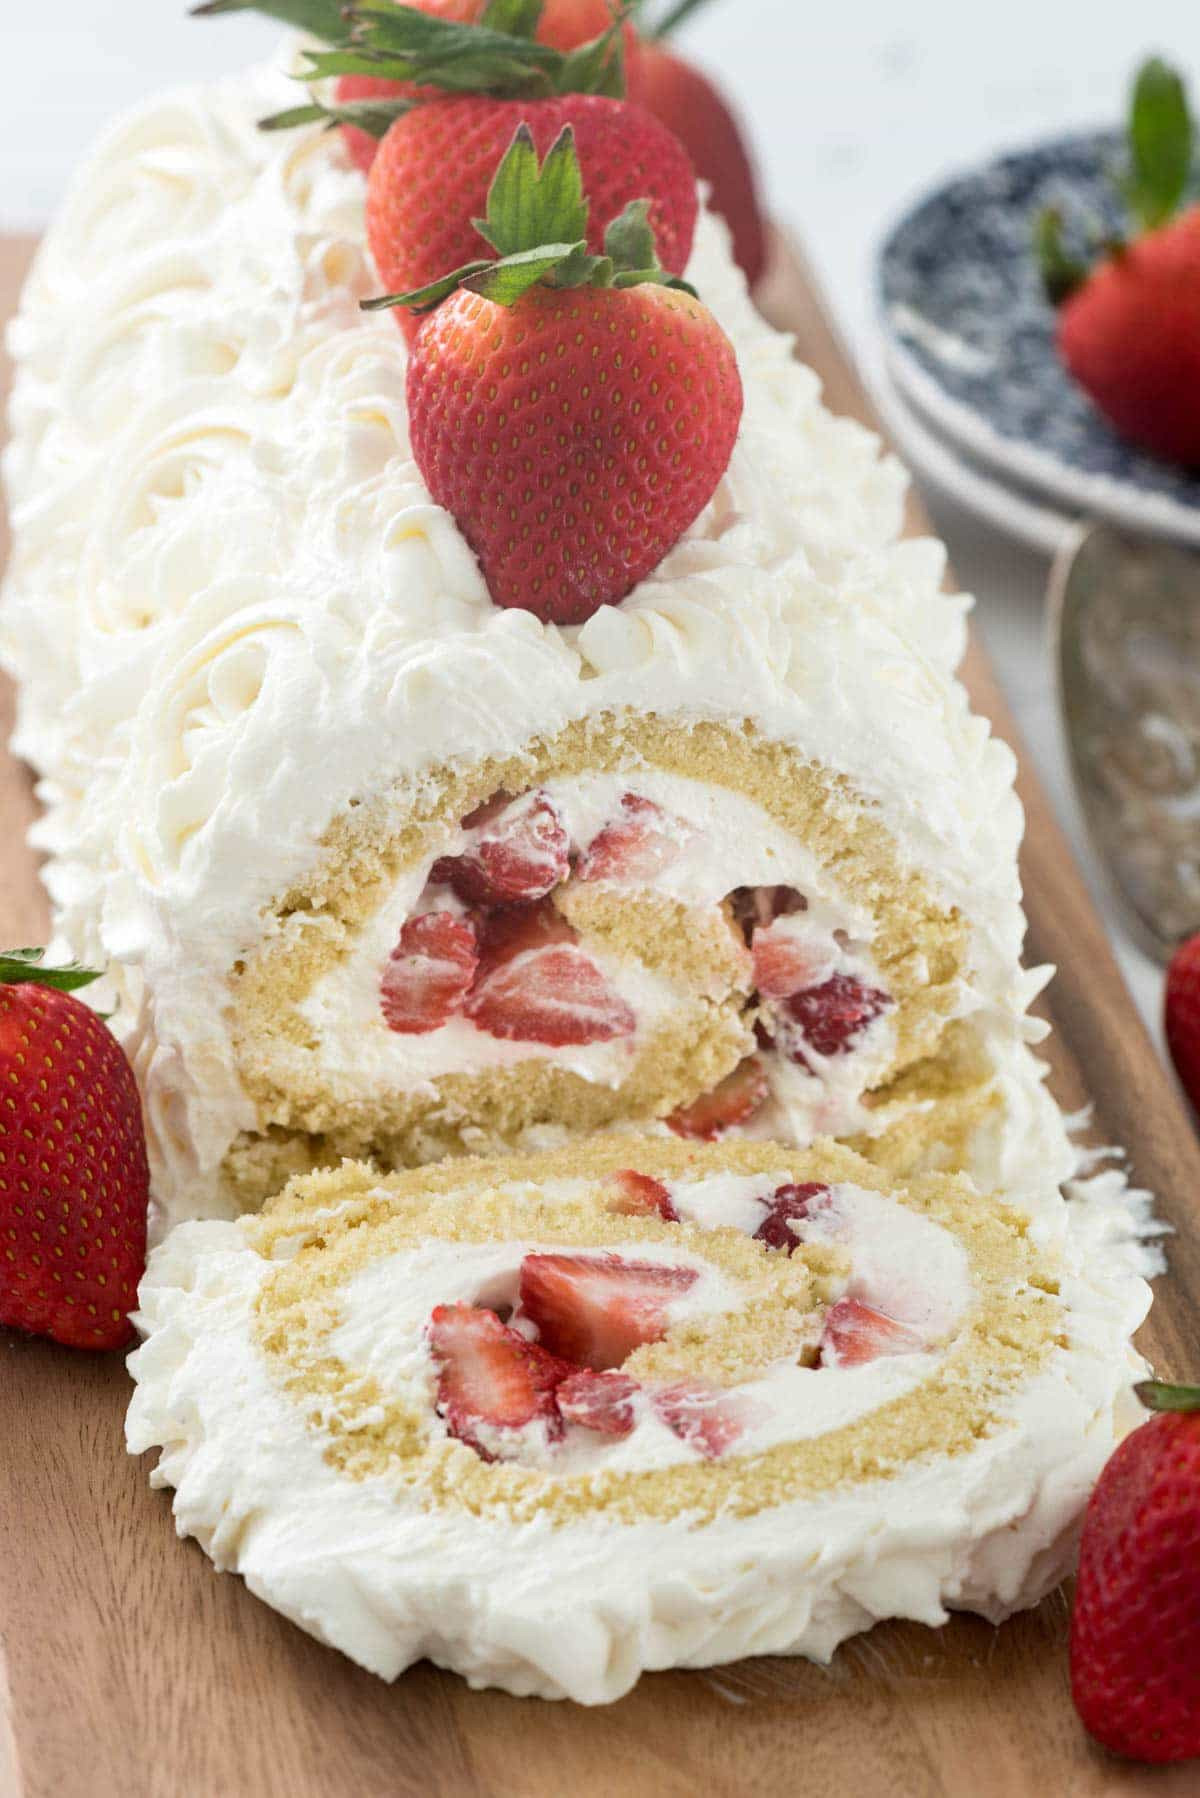 Strawberry Shortcake Cake  Strawberry Shortcake Cake Roll Crazy for Crust